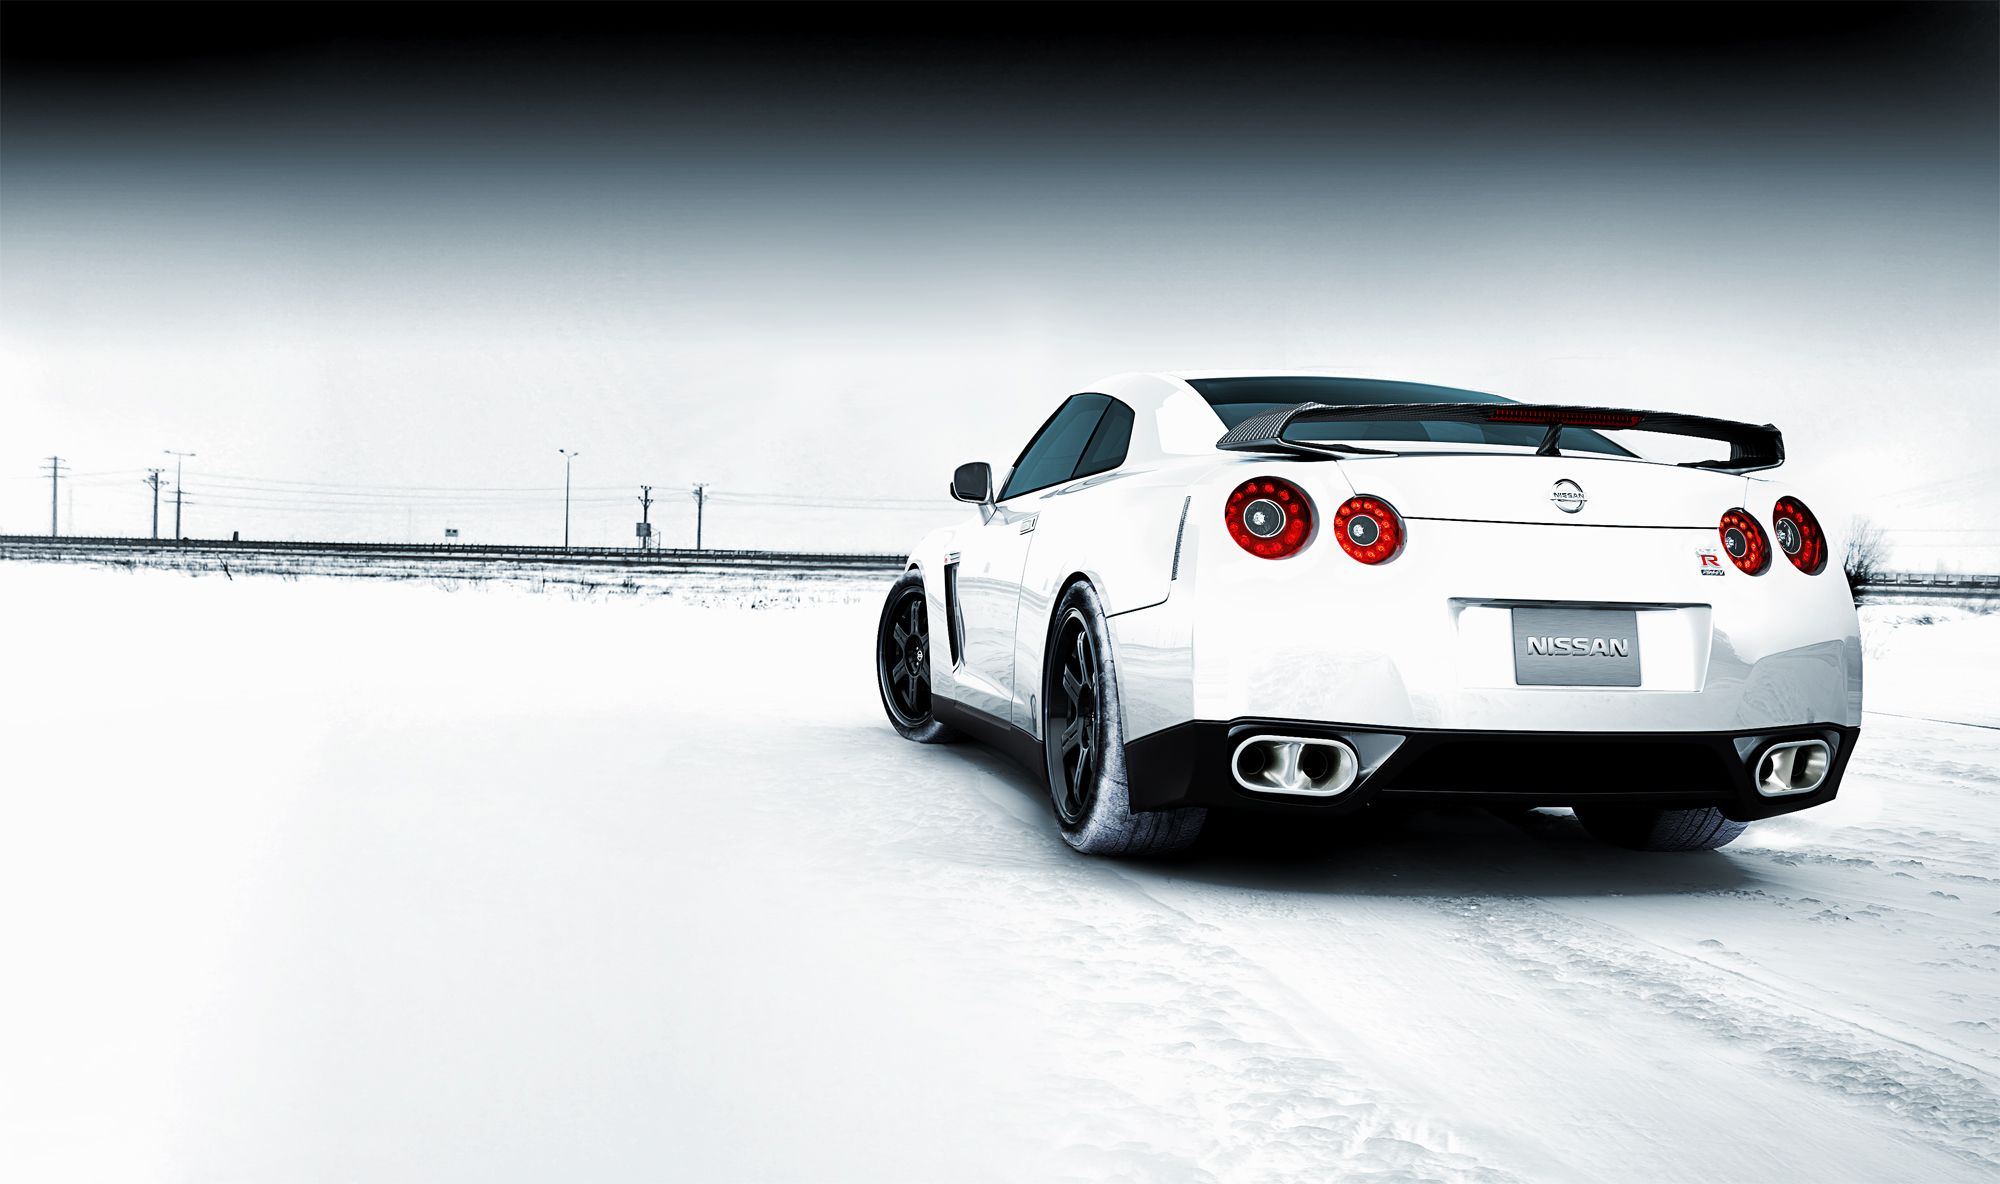 Nissan Gt R Wallpapers Top Free Nissan Gt R Backgrounds